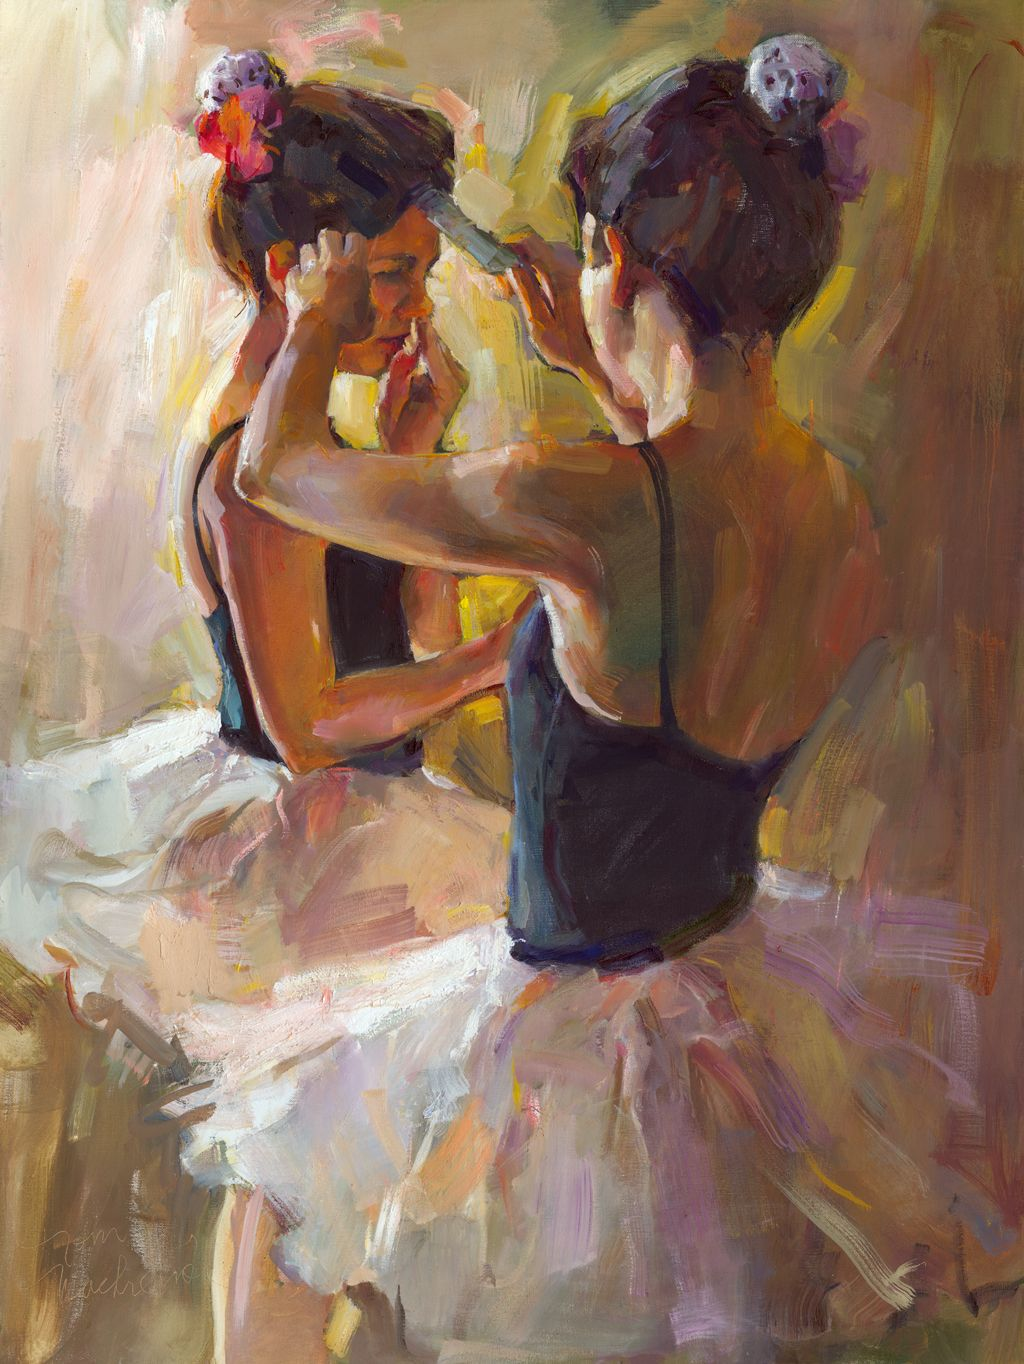 Getting Ready by Tom Nachreiner - Tom has lived in Wisconsin all his life - exhibits at Edgewood Orchard Galleries near Fish Creek, WI #ballet #art